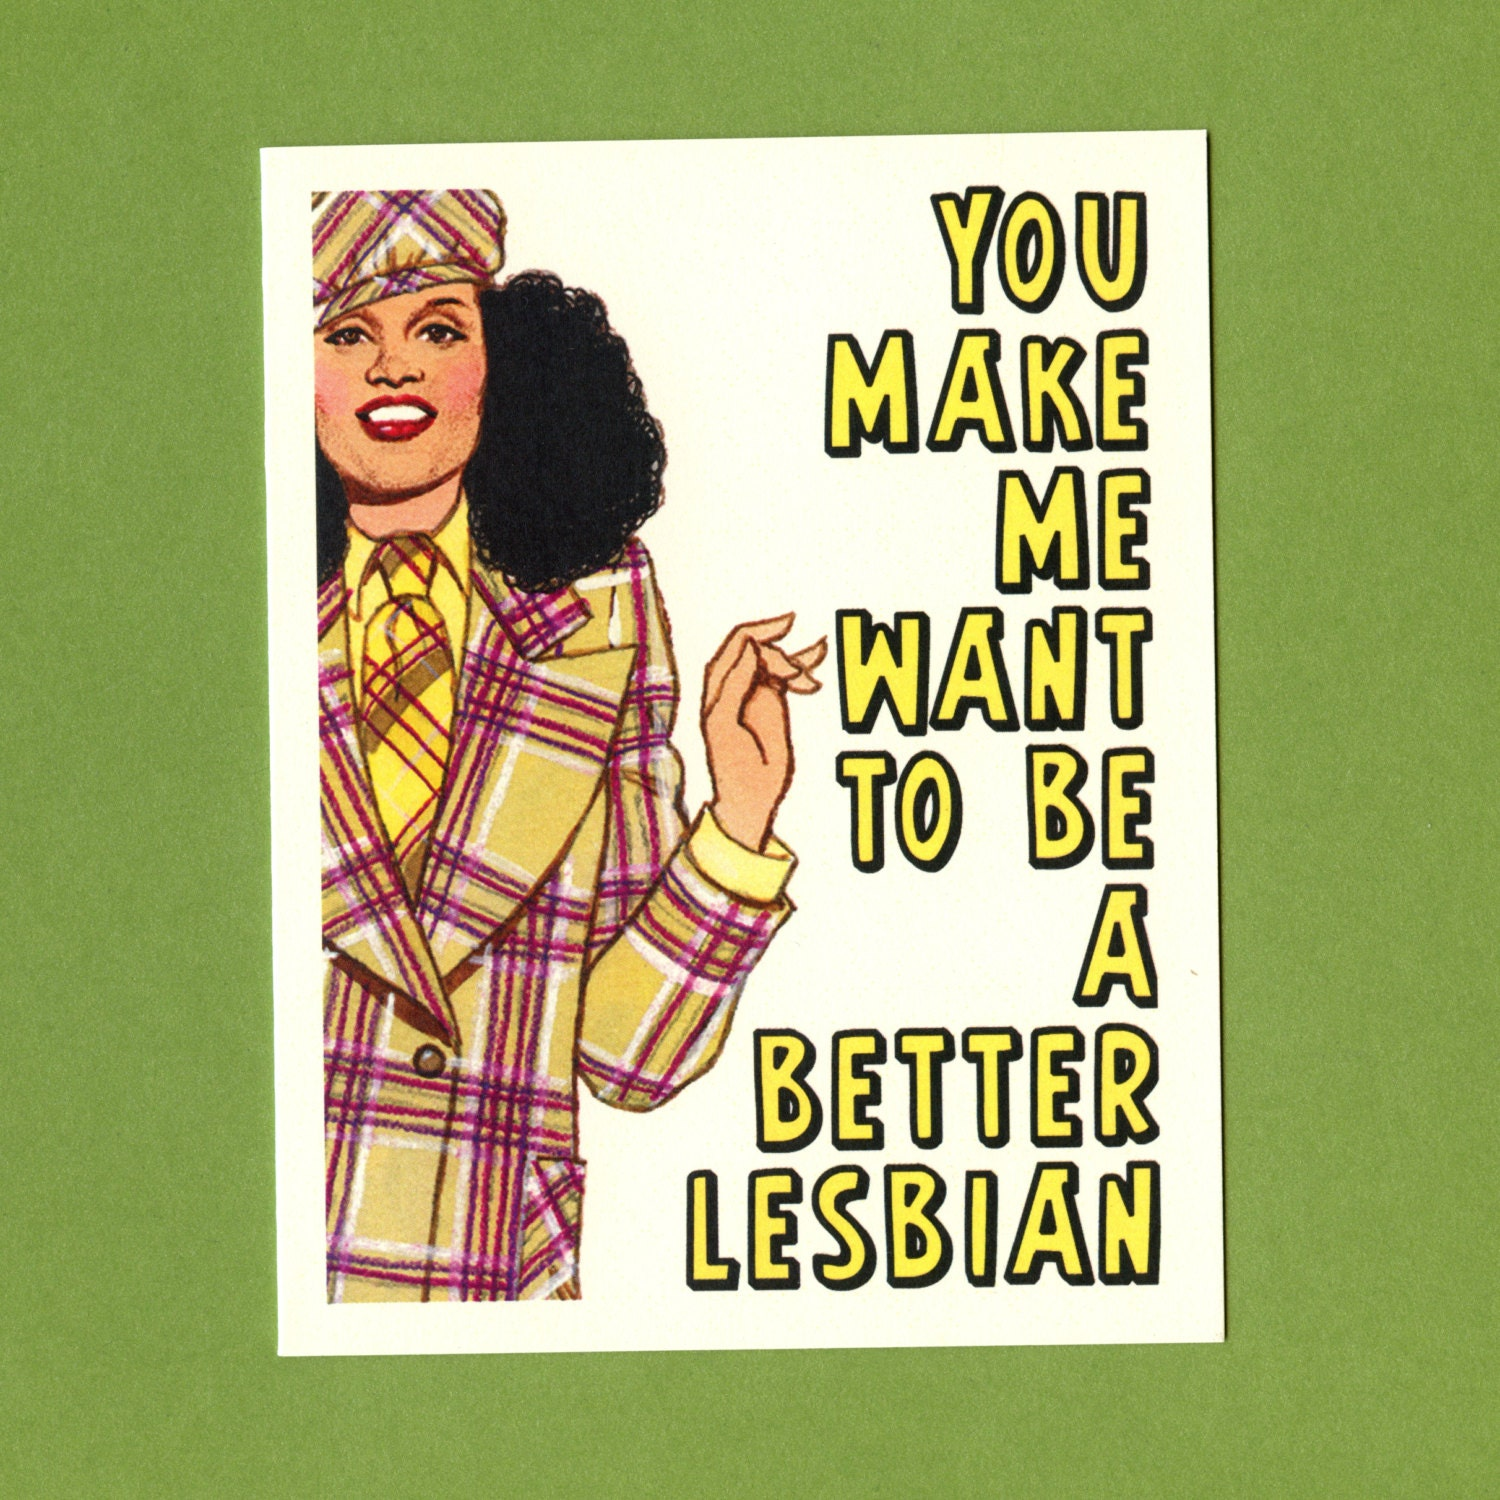 gay valentine day e card - Gay Valentines Cards